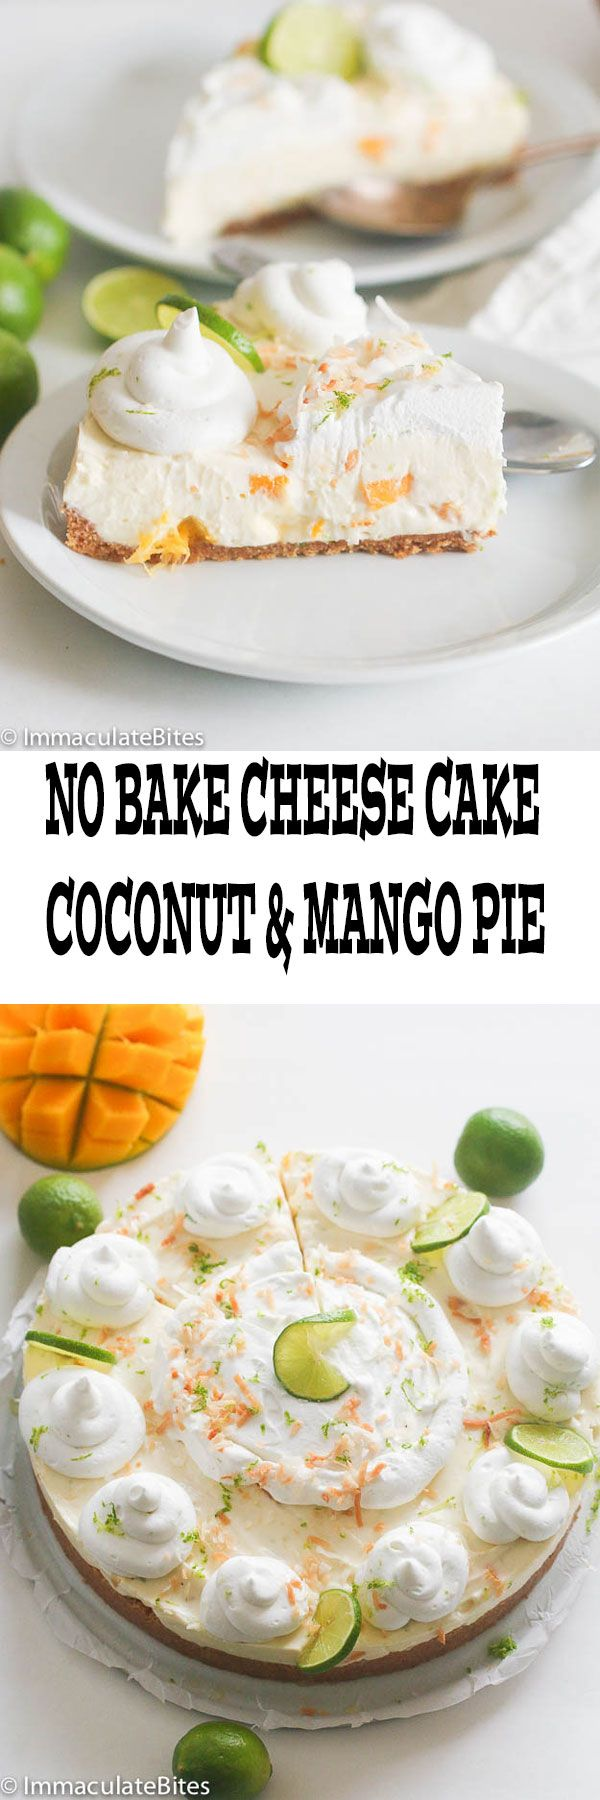 No Bake Key Lime Mango Coconut Cheese Cake Pie- This luscious cake is full of amazing lime and coconut flavor! Moist, creamy and So heavenly! Perfectly sweet, tart and Sinfully Good!